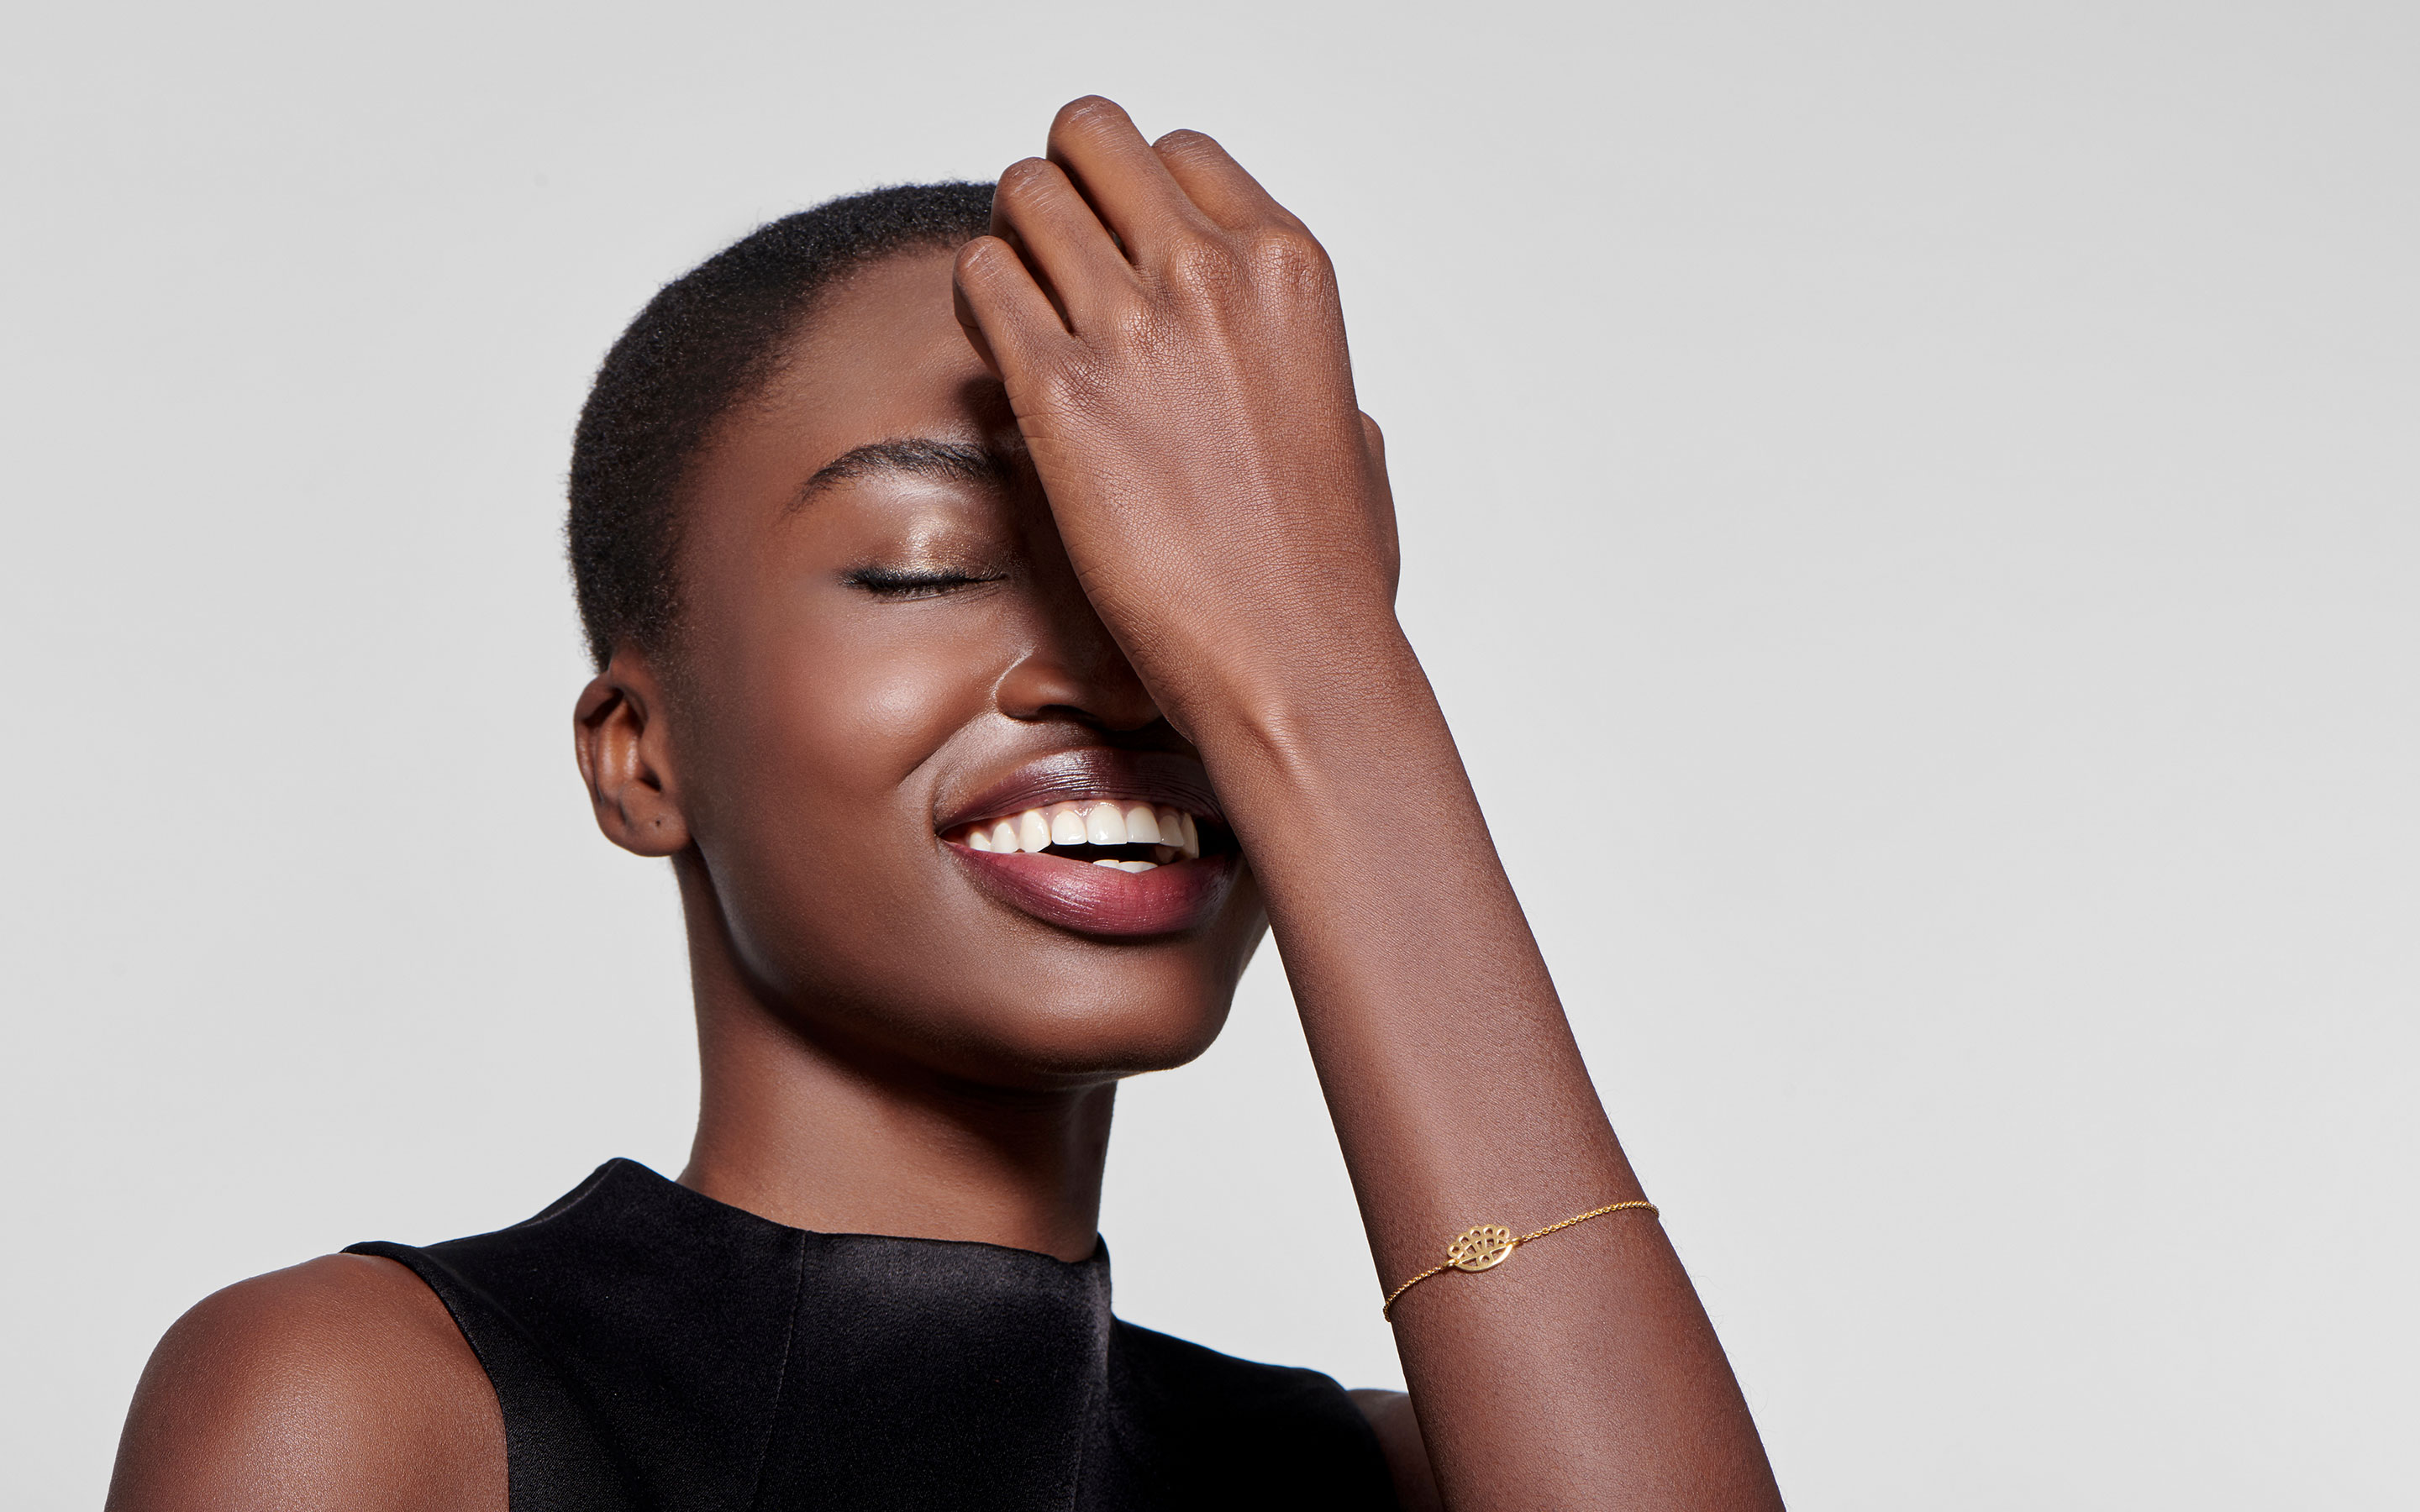 laughing black woman modeling 22 karat gold bracelet with floral evil eye charm in small size